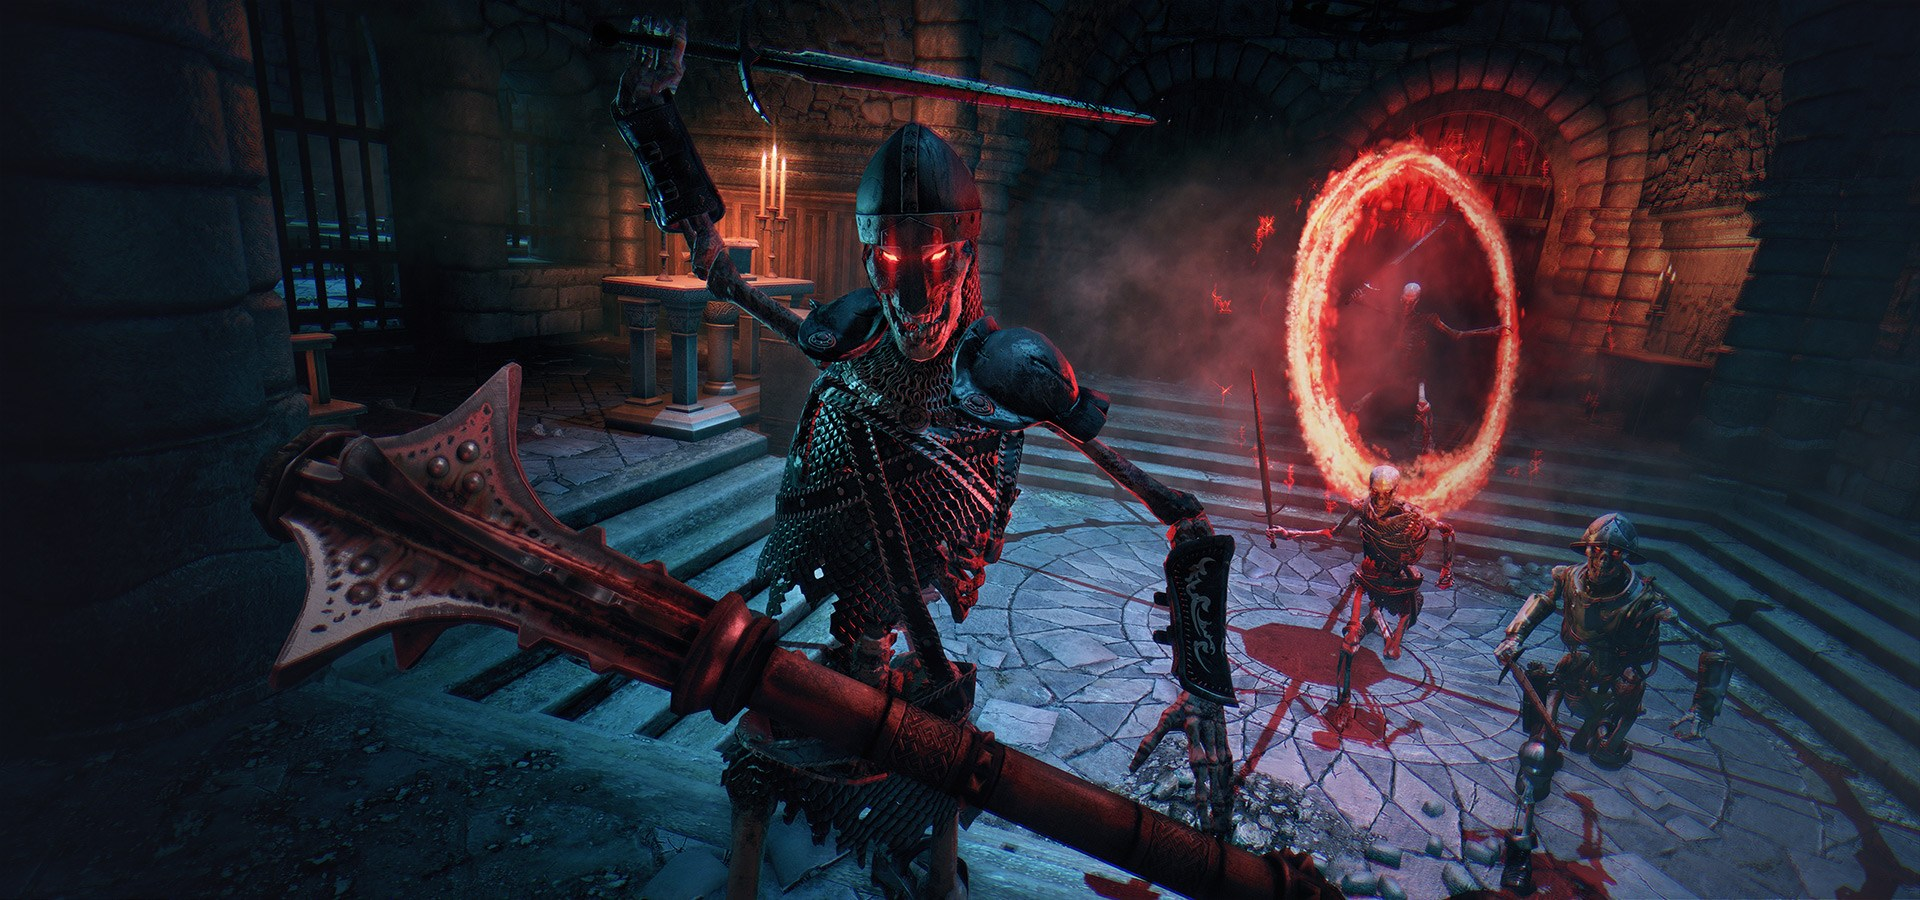 Dying Light – Hellraid adds an entirely new game mode!